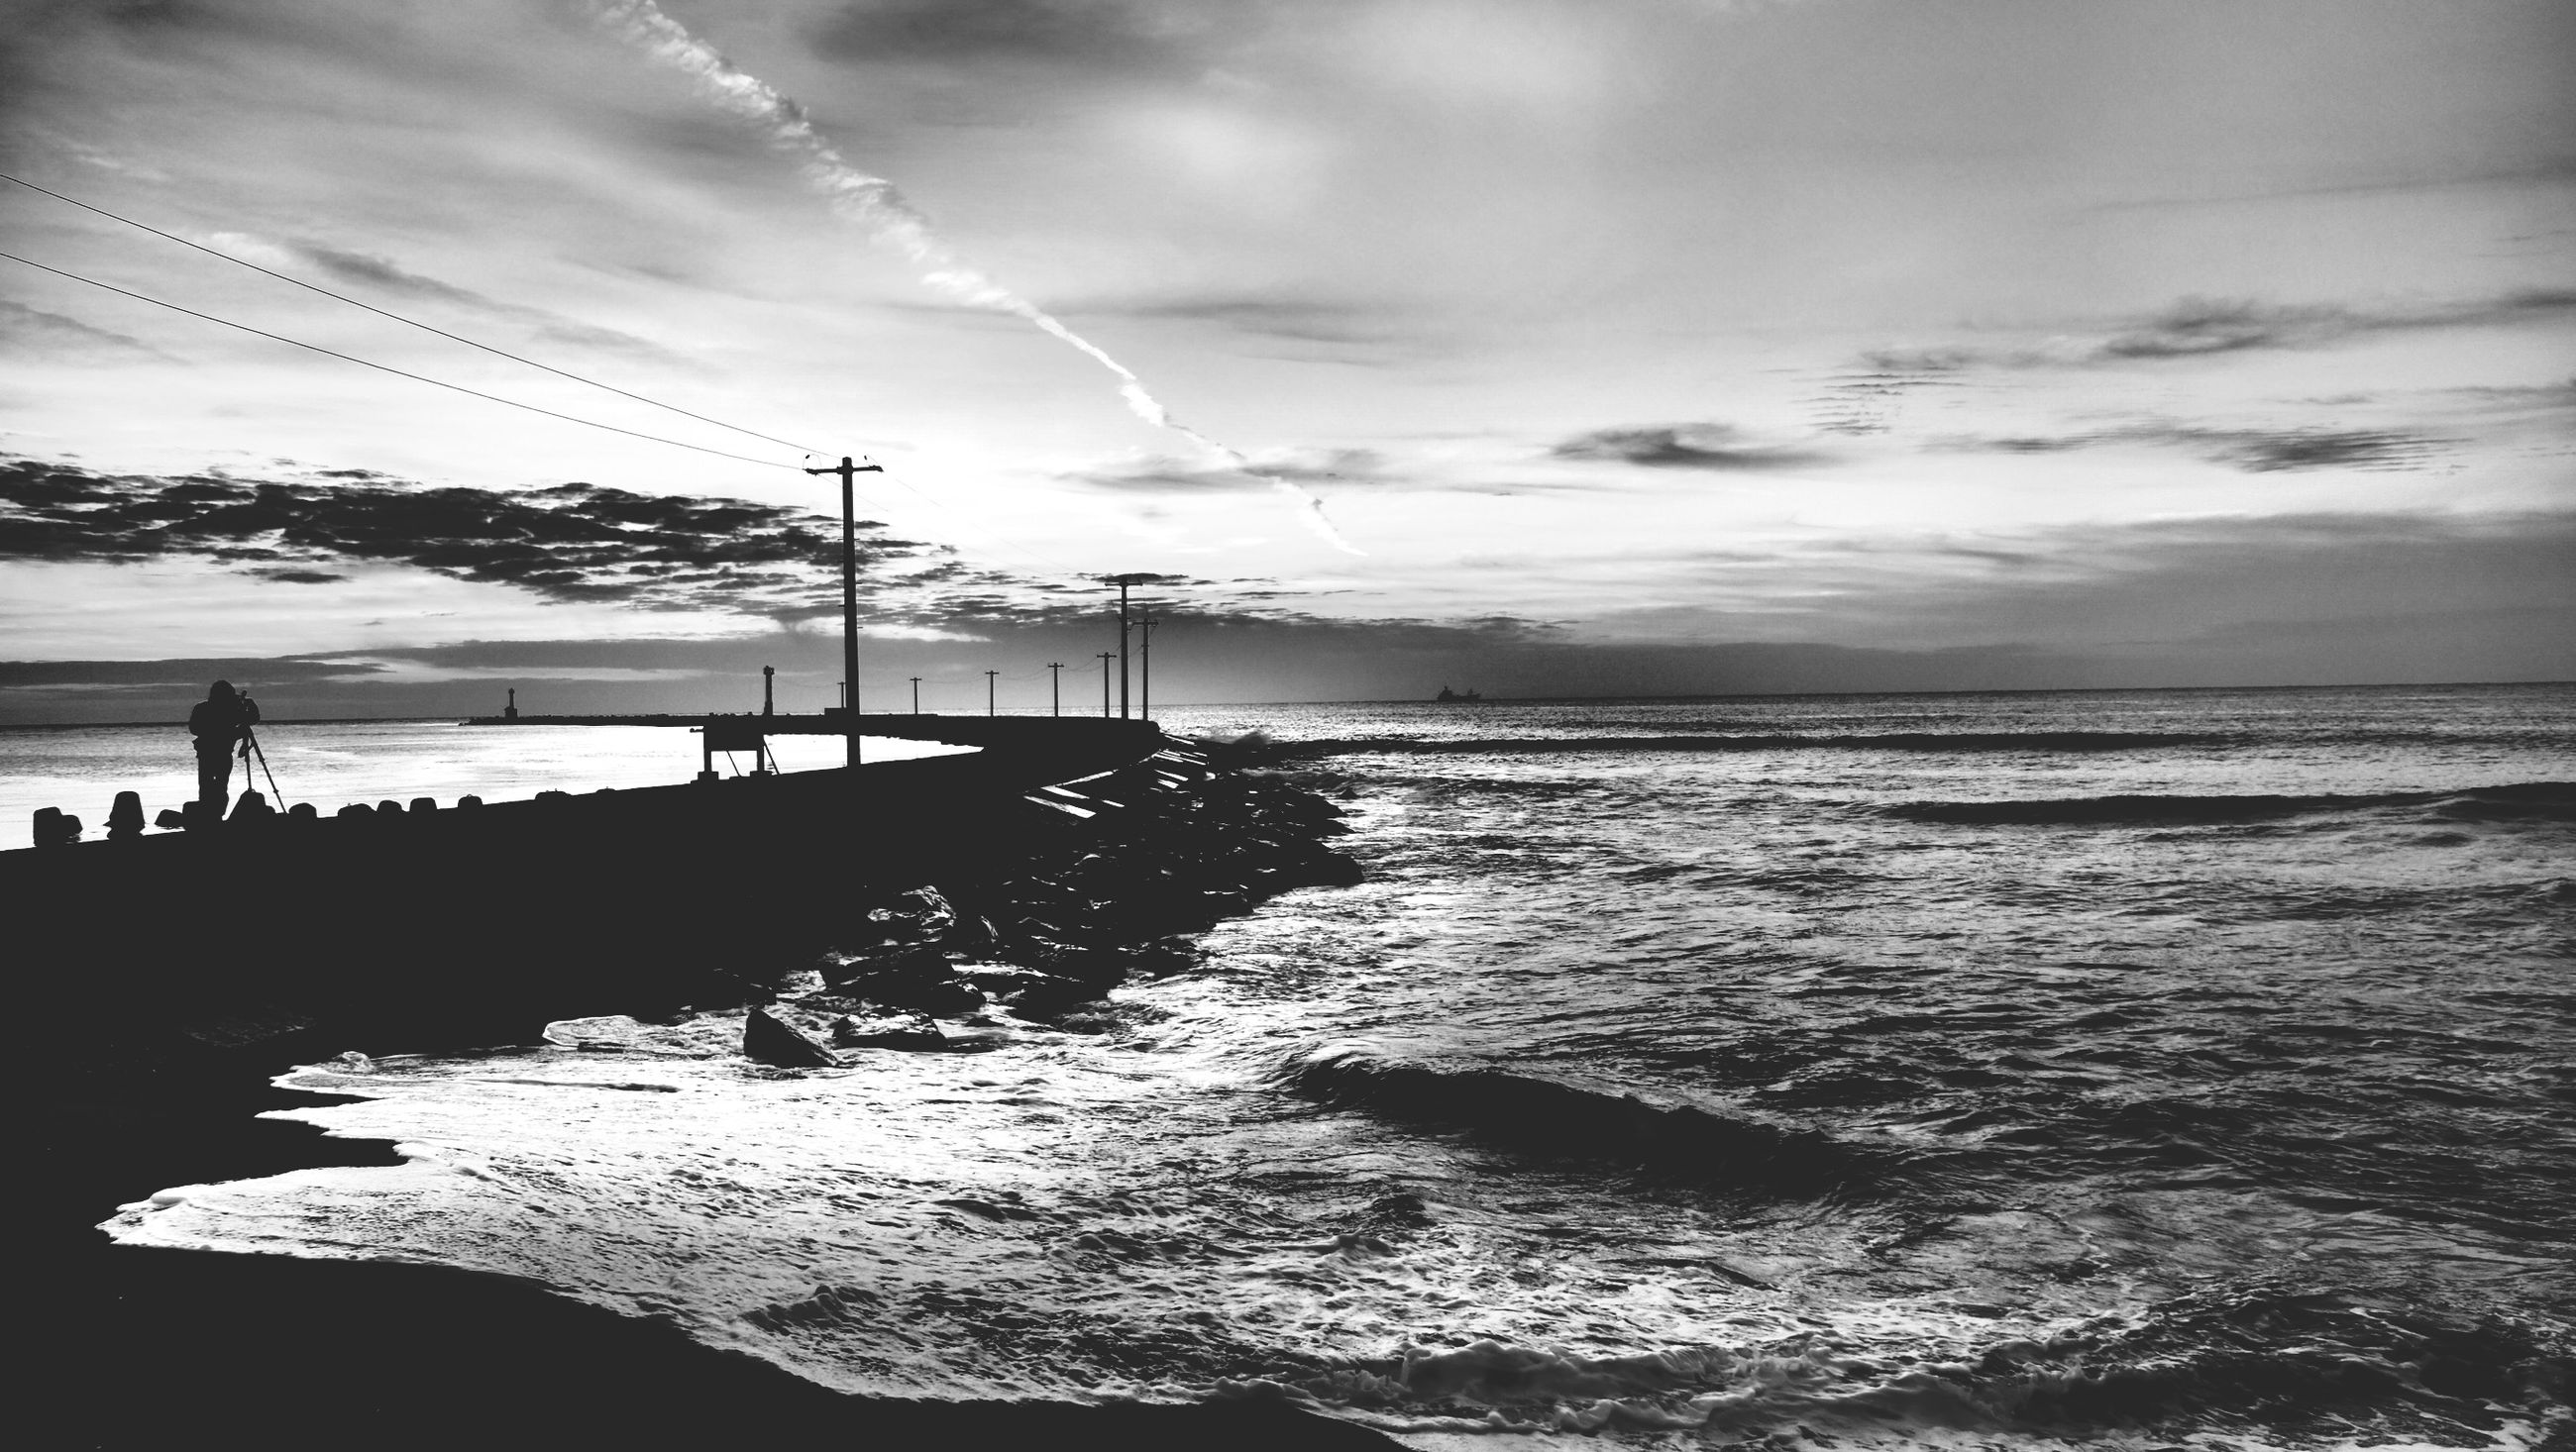 water, sea, sky, tranquil scene, horizon over water, beauty in nature, scenics, cloud - sky, tranquility, nature, beach, cloudy, silhouette, cloud, sunset, shore, idyllic, outdoors, dusk, non-urban scene